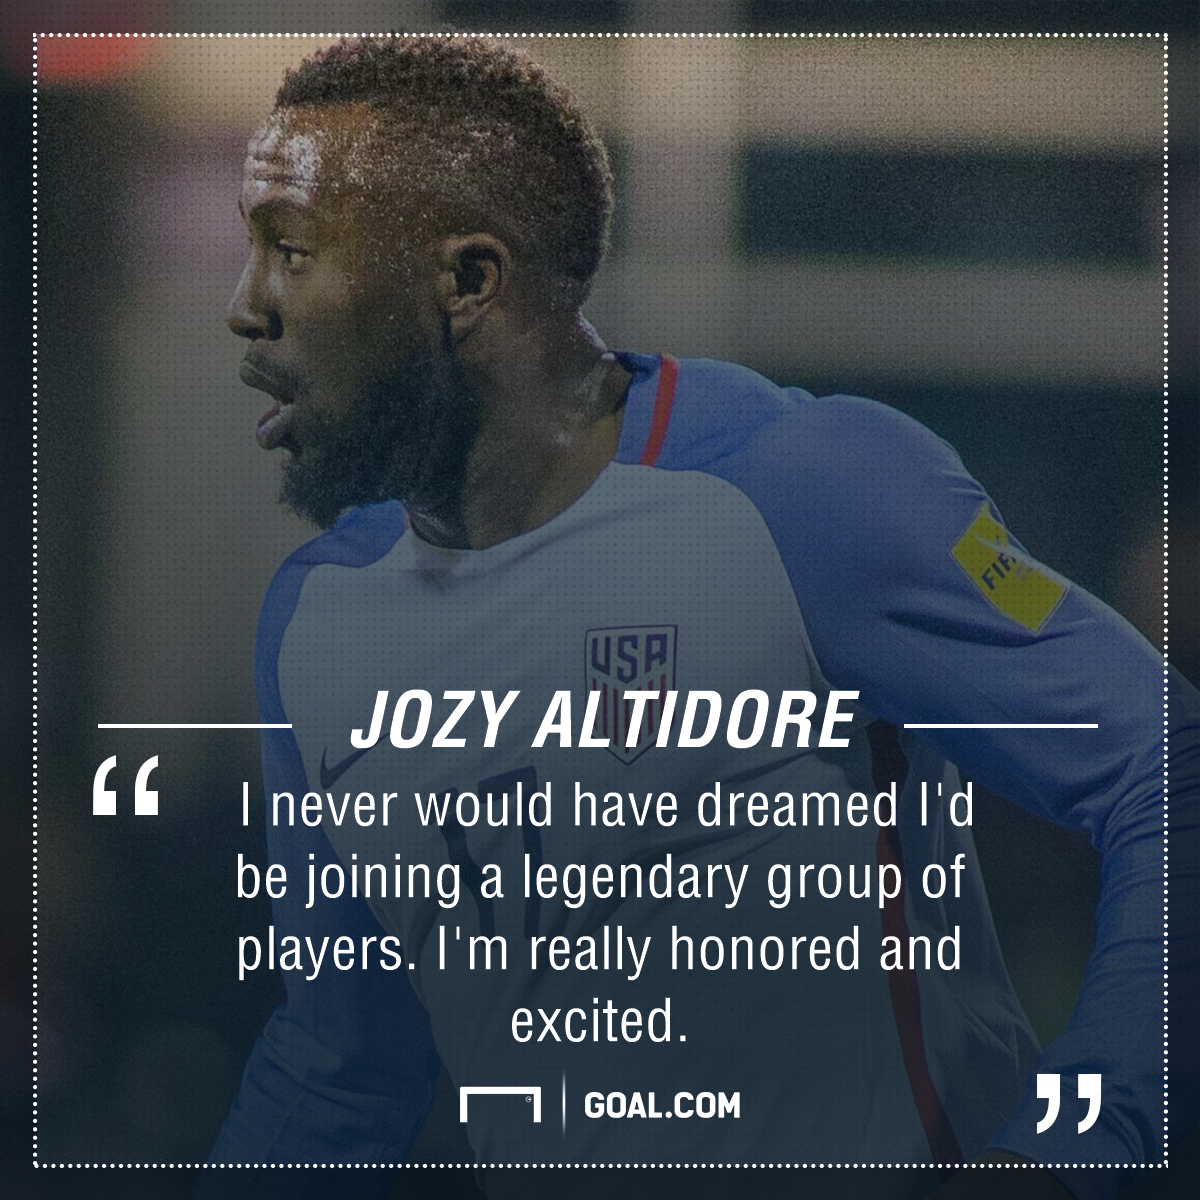 Jozy Altidore playing surface